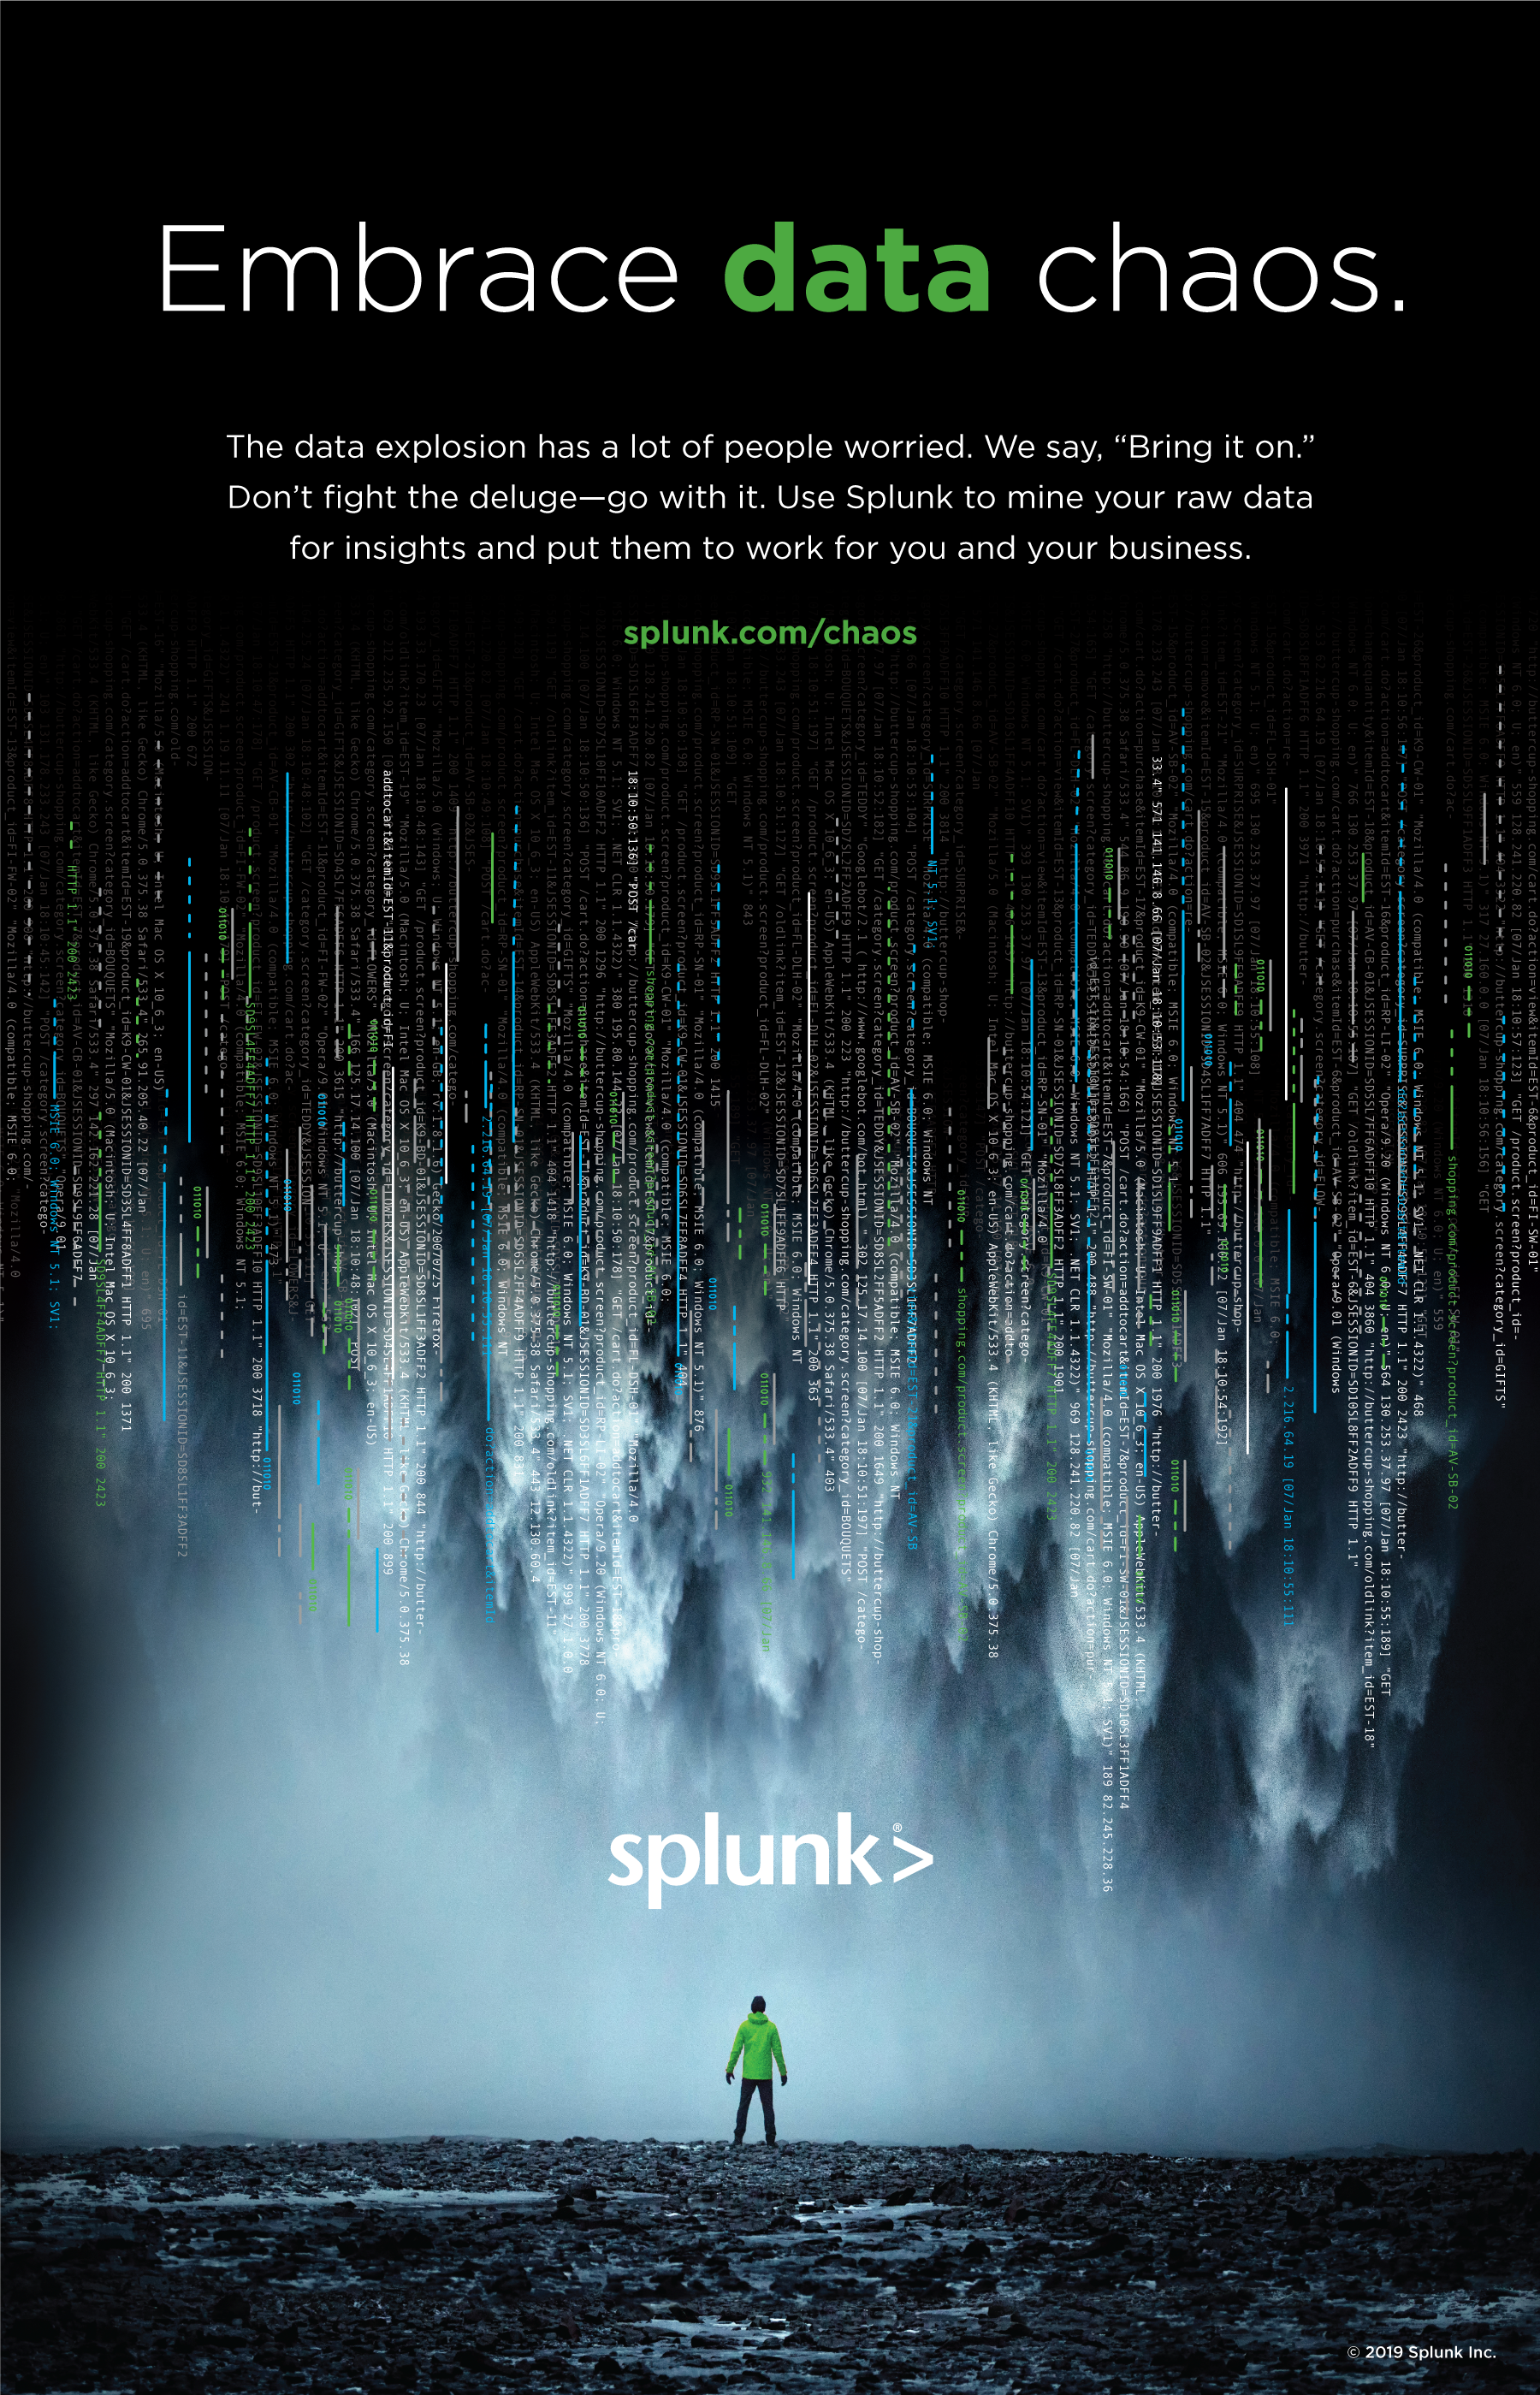 BRAND-Splunk-Brand-Extension-Waterfall-Ad-106.png